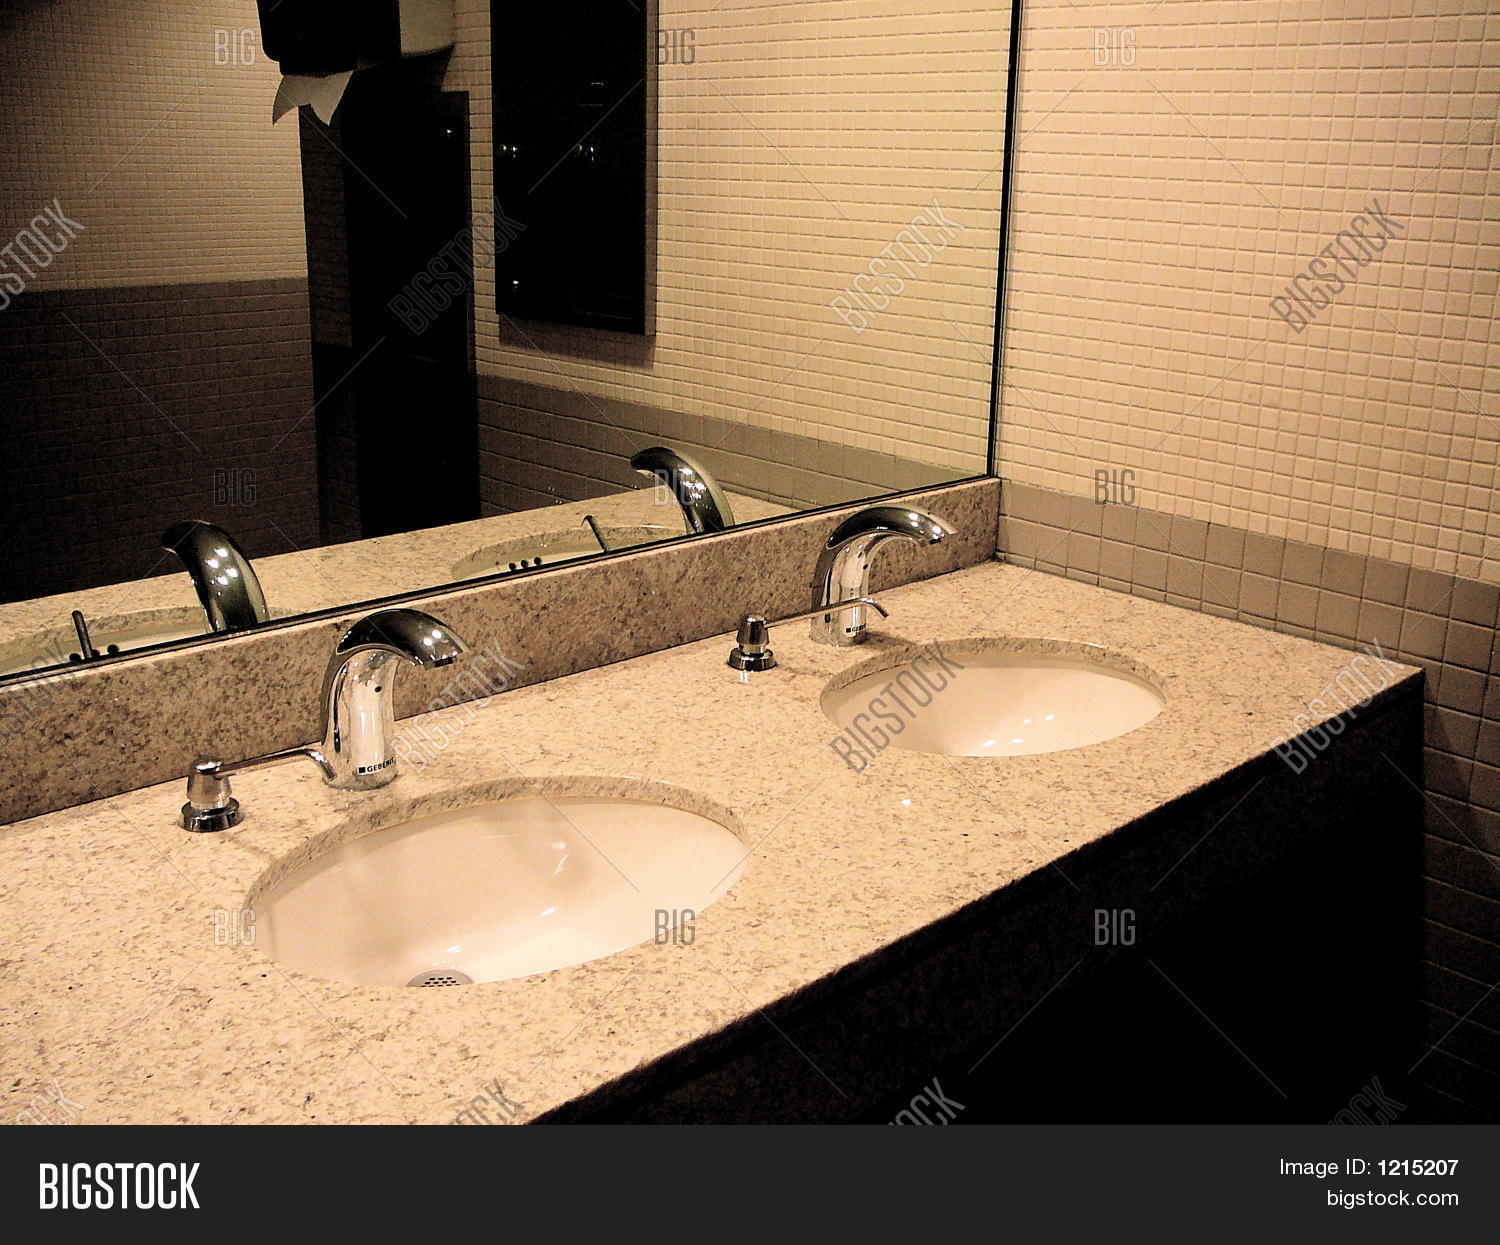 Public Bathroom Sink public restroom with sinks and mirror stock photo & stock images